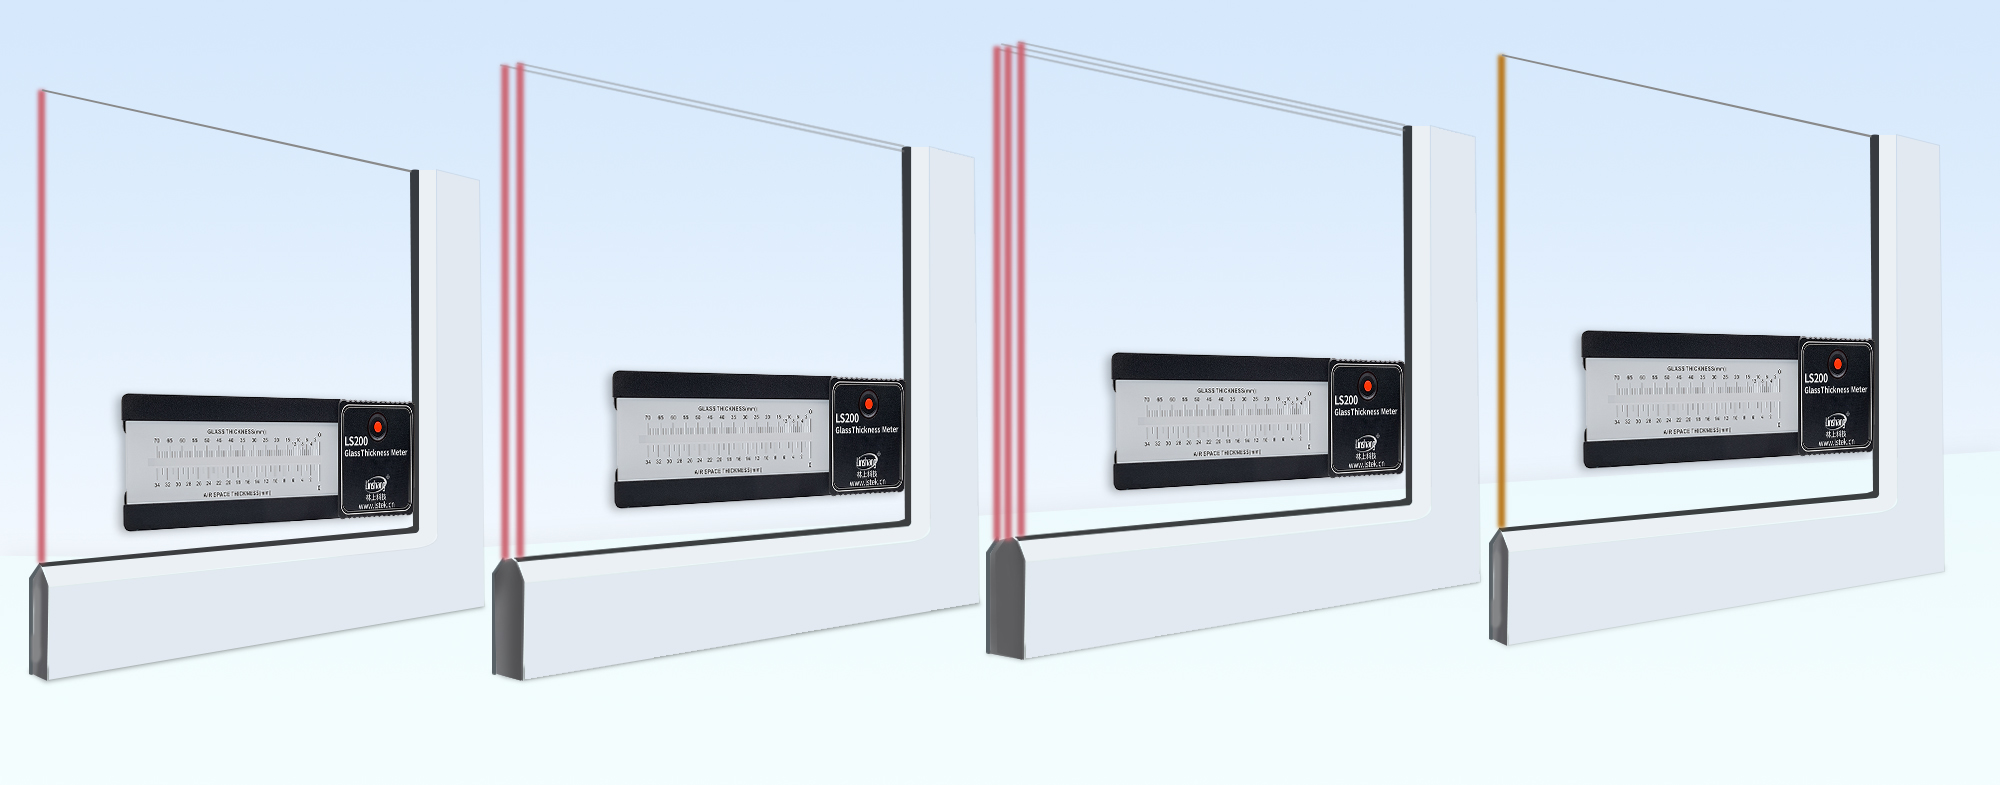 LS200 glass thickness meter test glass